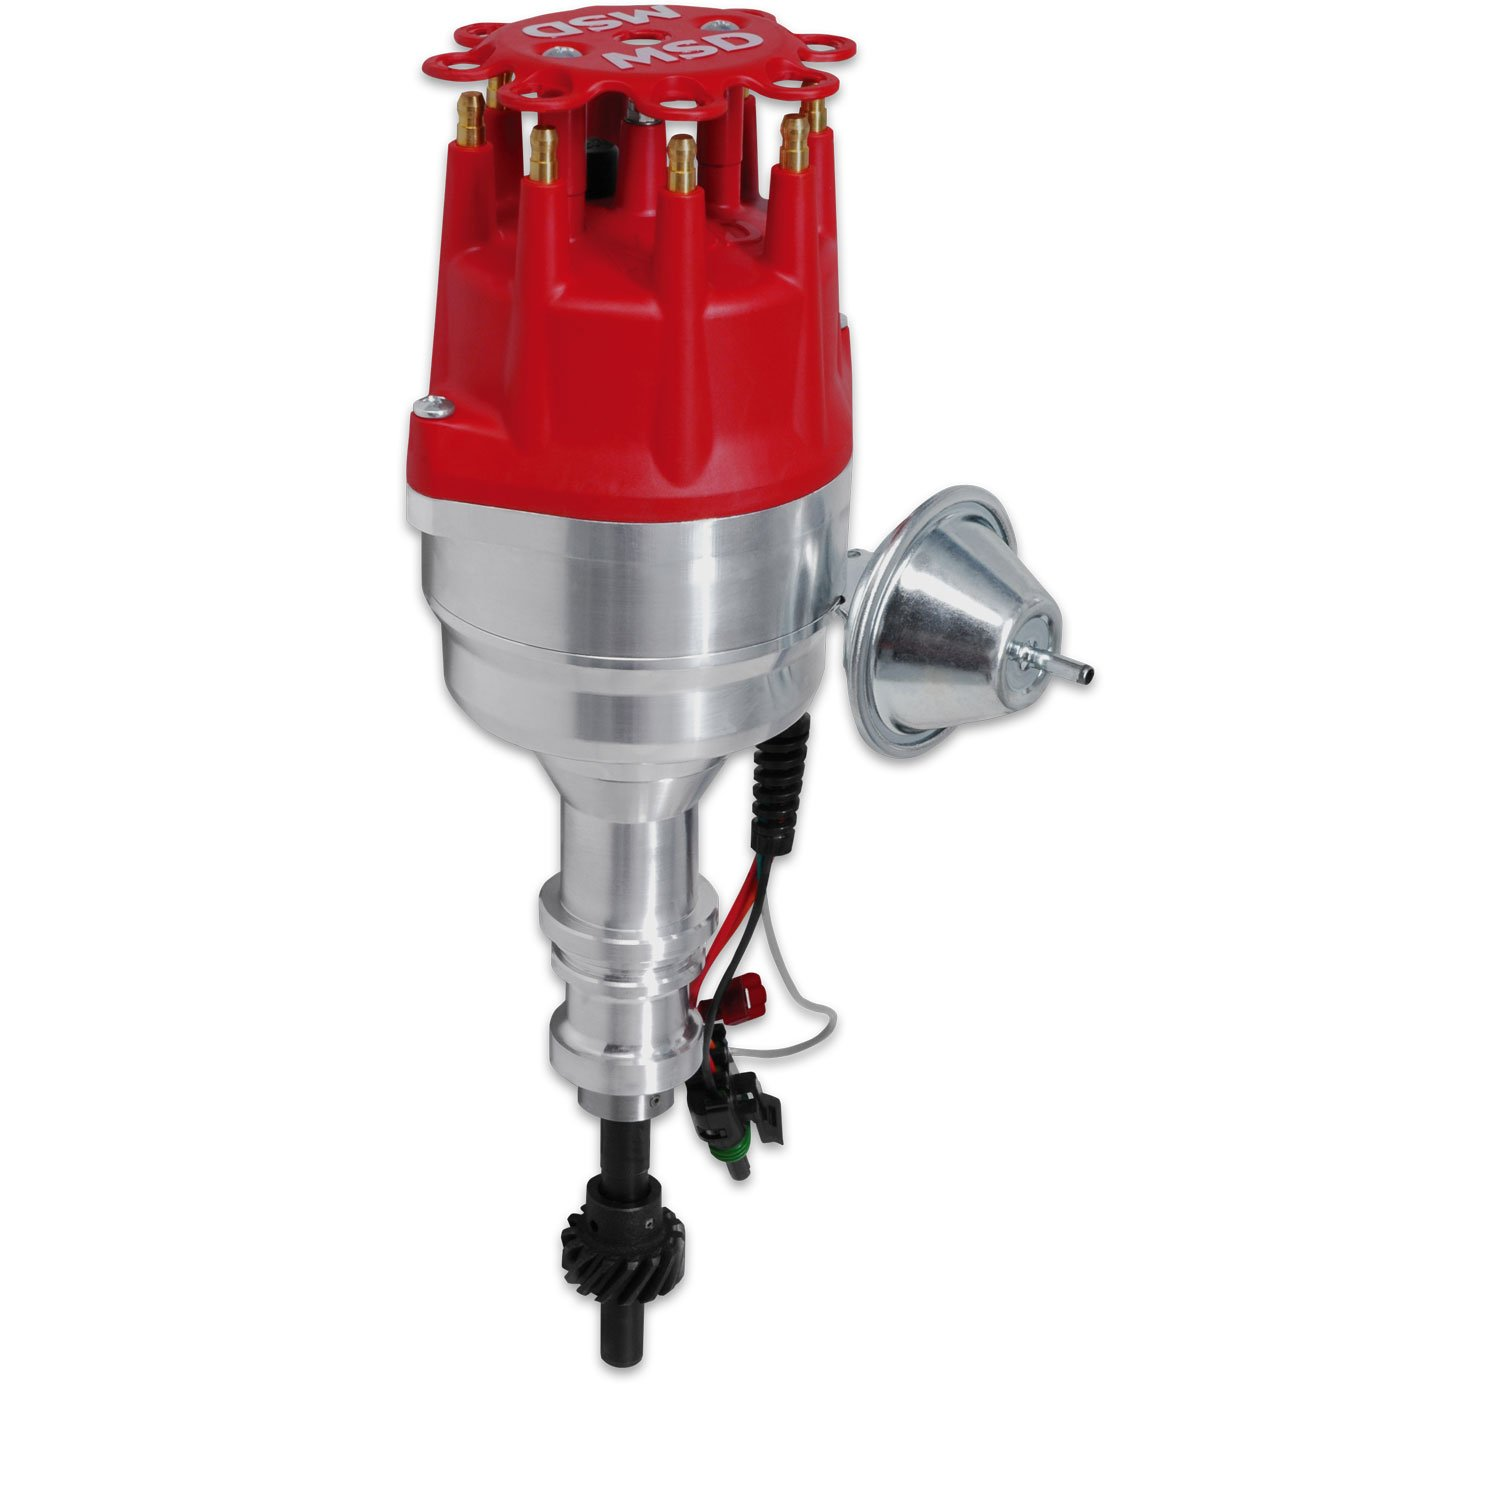 MSD 8350 Ford 351C-460 Ready-To-Run Pro-Billet Distributor - MSD ...